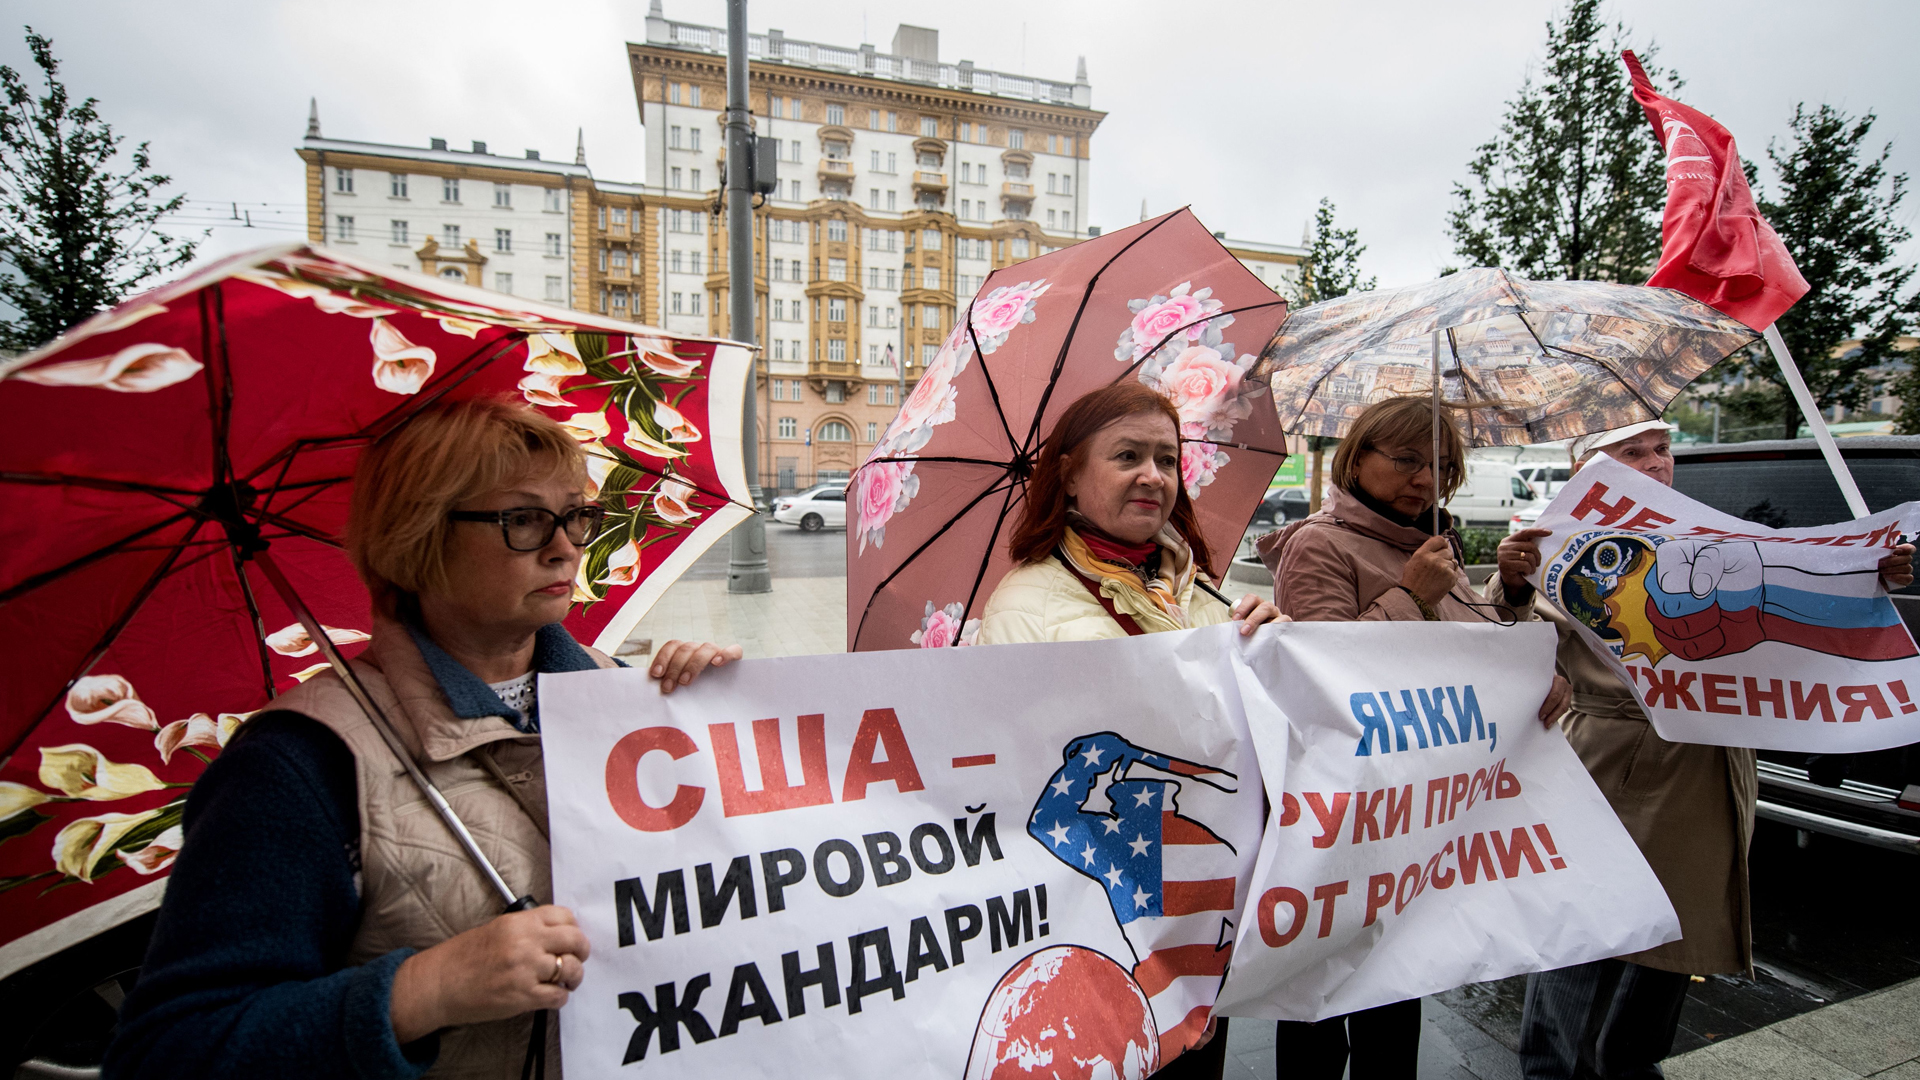 """Russian communist party supporters hold a poster reading """"USA is a policeman of the world"""" during a rally in Moscow Sept. 5, 2017, against the U.S.'s closure of Russian diplomatic offices. (Credit: Yuri Kadobnov/AFP/Getty Images)"""